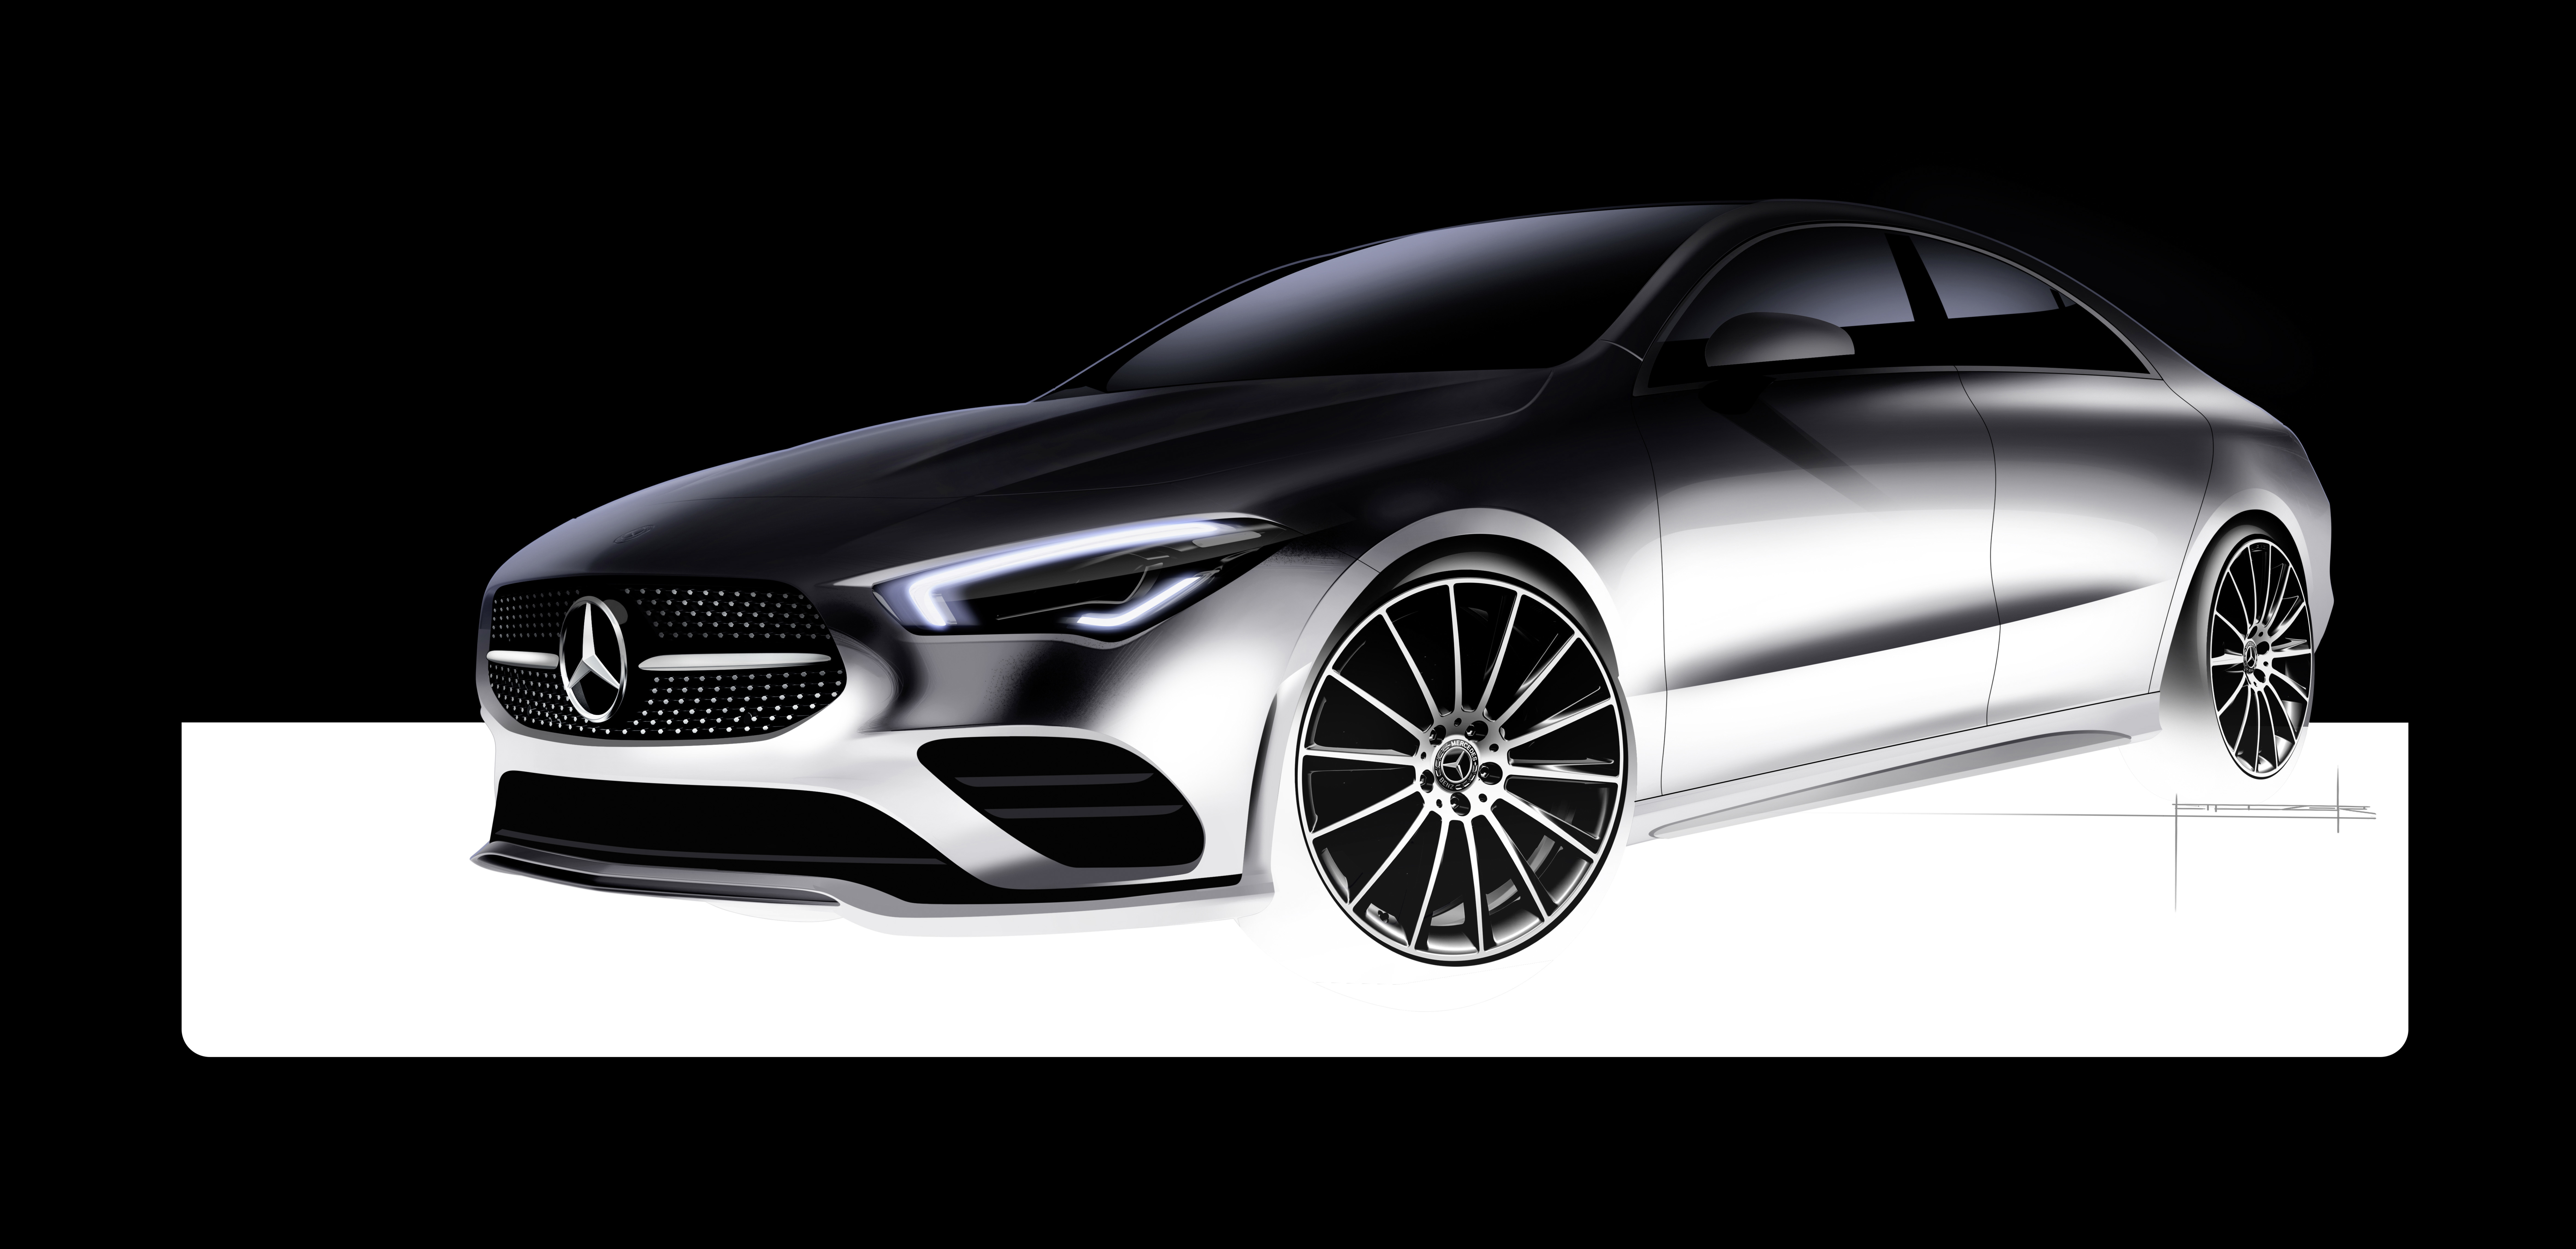 Mercedes-Benz CLA Coupe - 2019 - design sketch - front side-face / profil avant